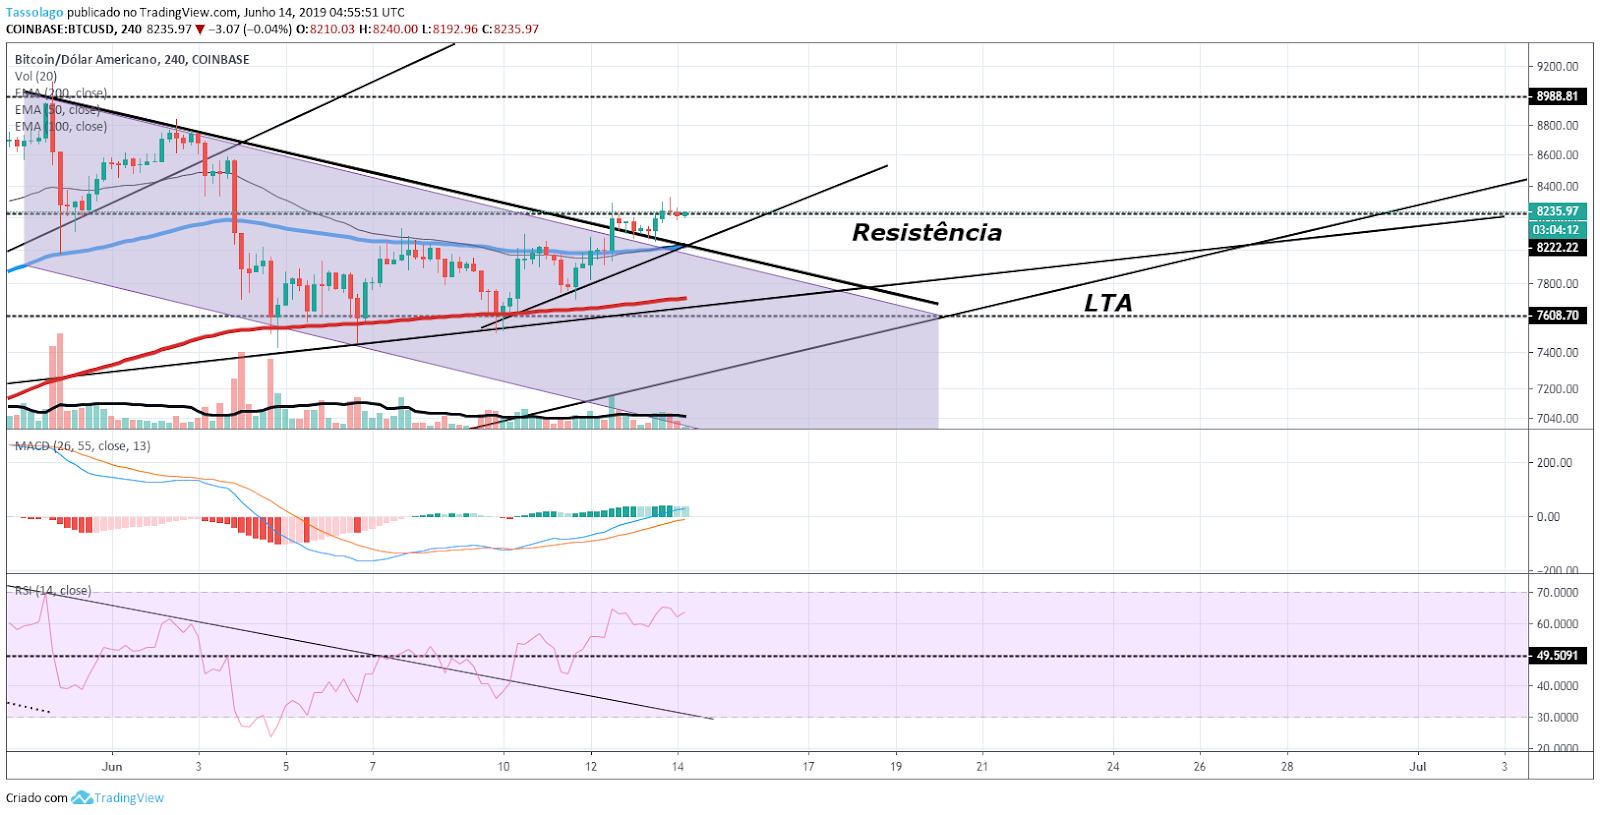 https://financialmove.com.br/wp-content/uploads/2019/06/Análise-Bitcoin-14.06.2019.png